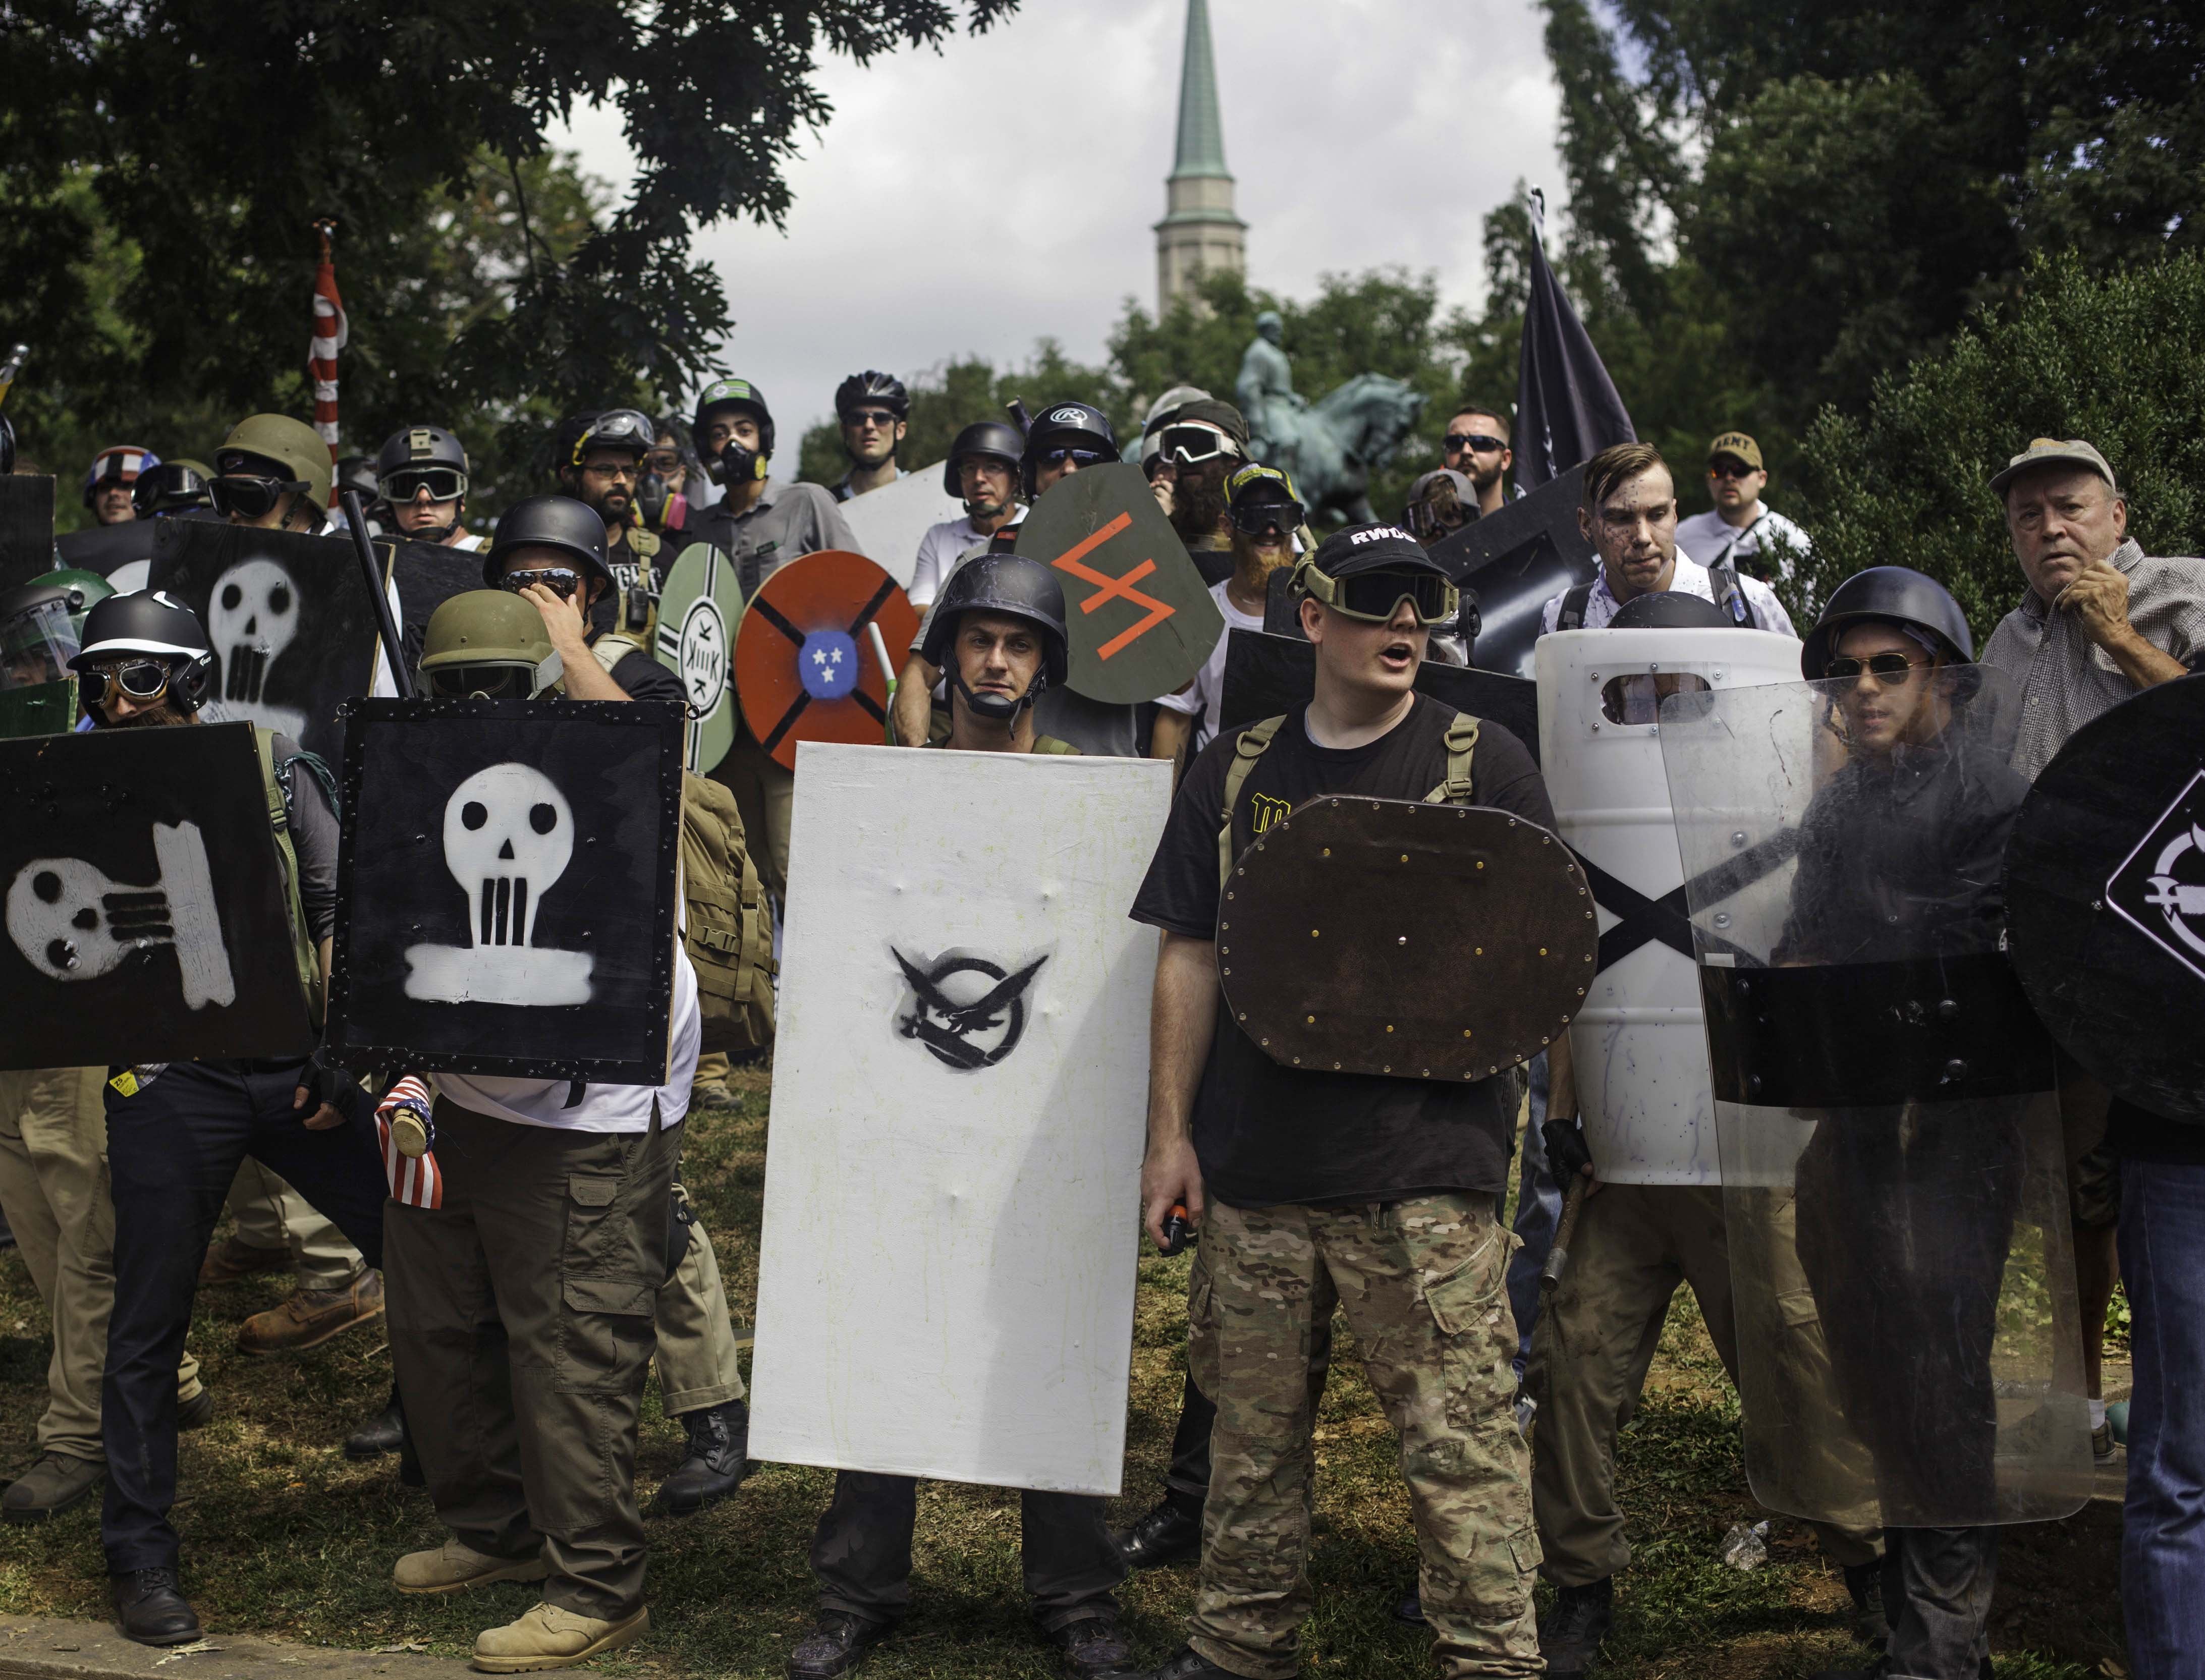 The White Supremacists form a line against the Antifa at Lee Park. They attempted to hold the park until a state of emergency was declared and the Virginia State Police cleared the park. August 12 , 2017 Charlottesville, VA. (Shay Horse/GroundTruth)